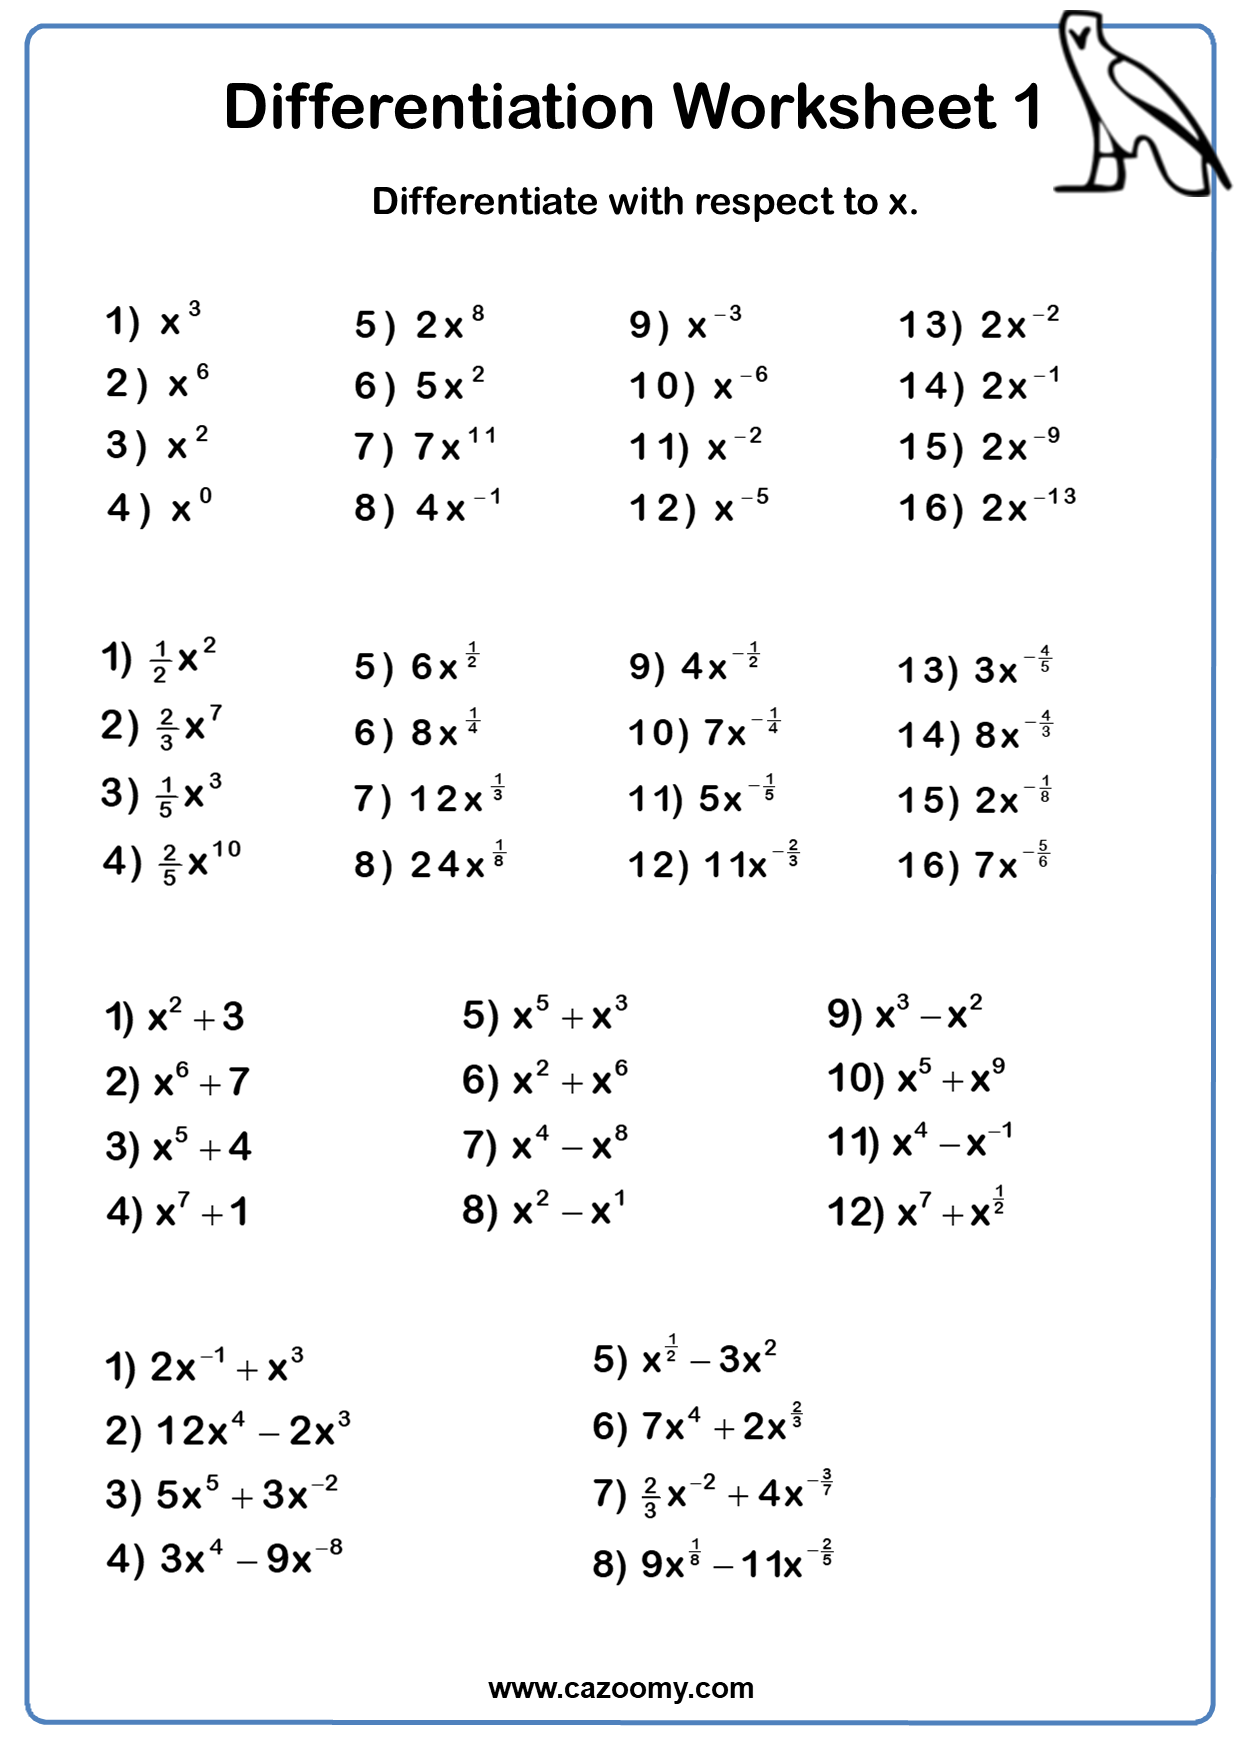 Differentiation Worksheets 1 3 In